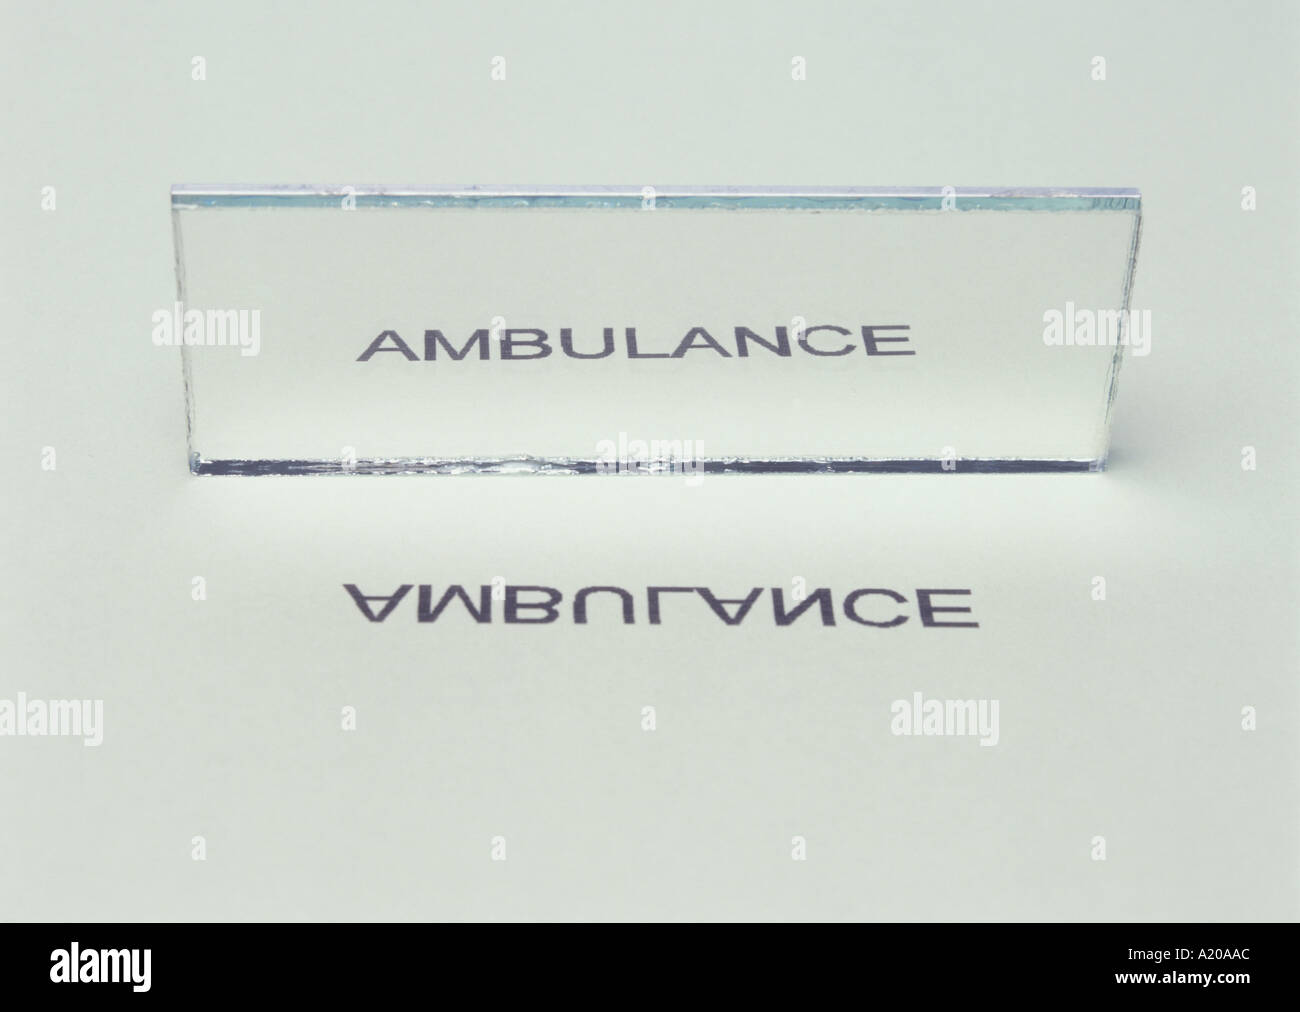 Ambulance Reflected In Mirror Shows Lateral Inversion